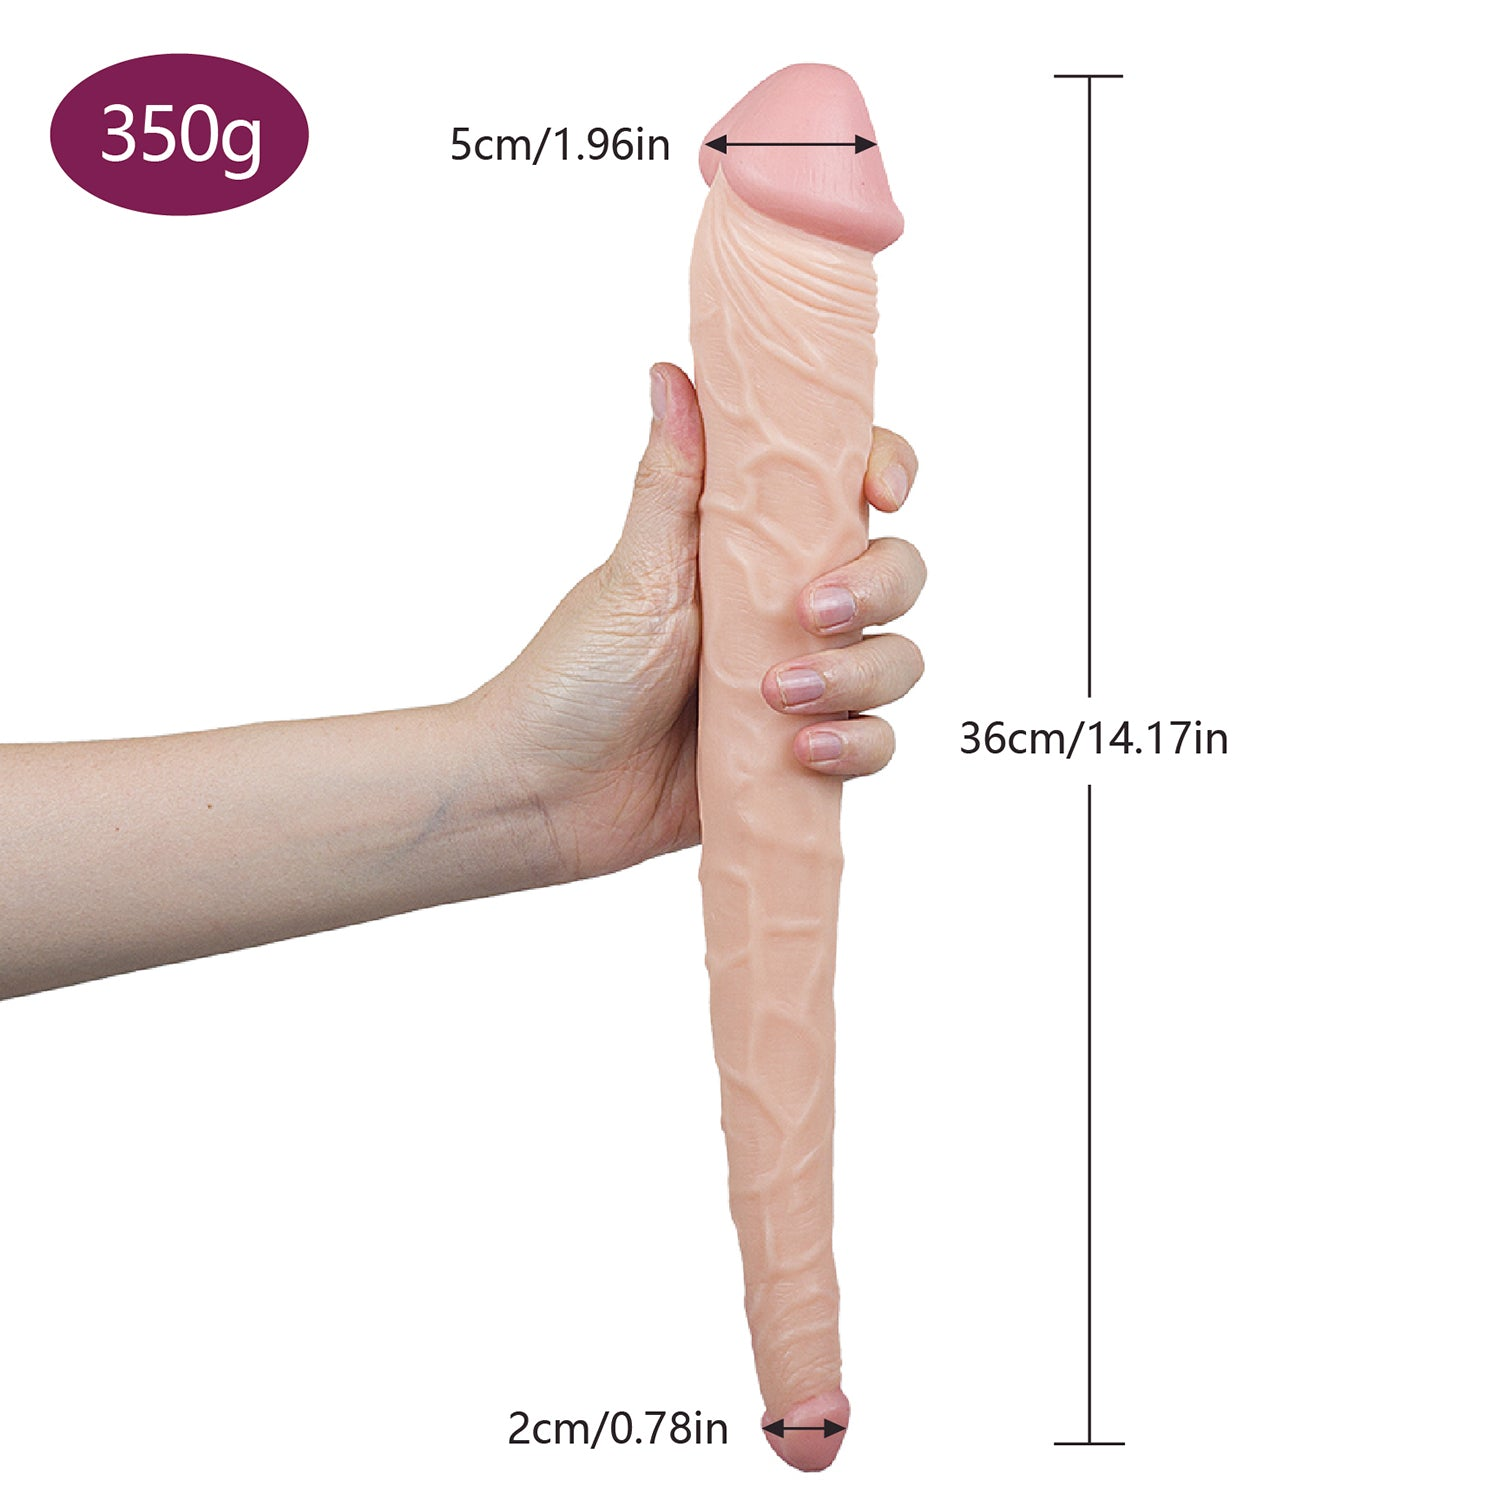 MD 36cm Double ended Dildo Realistic Silicone Double Dong